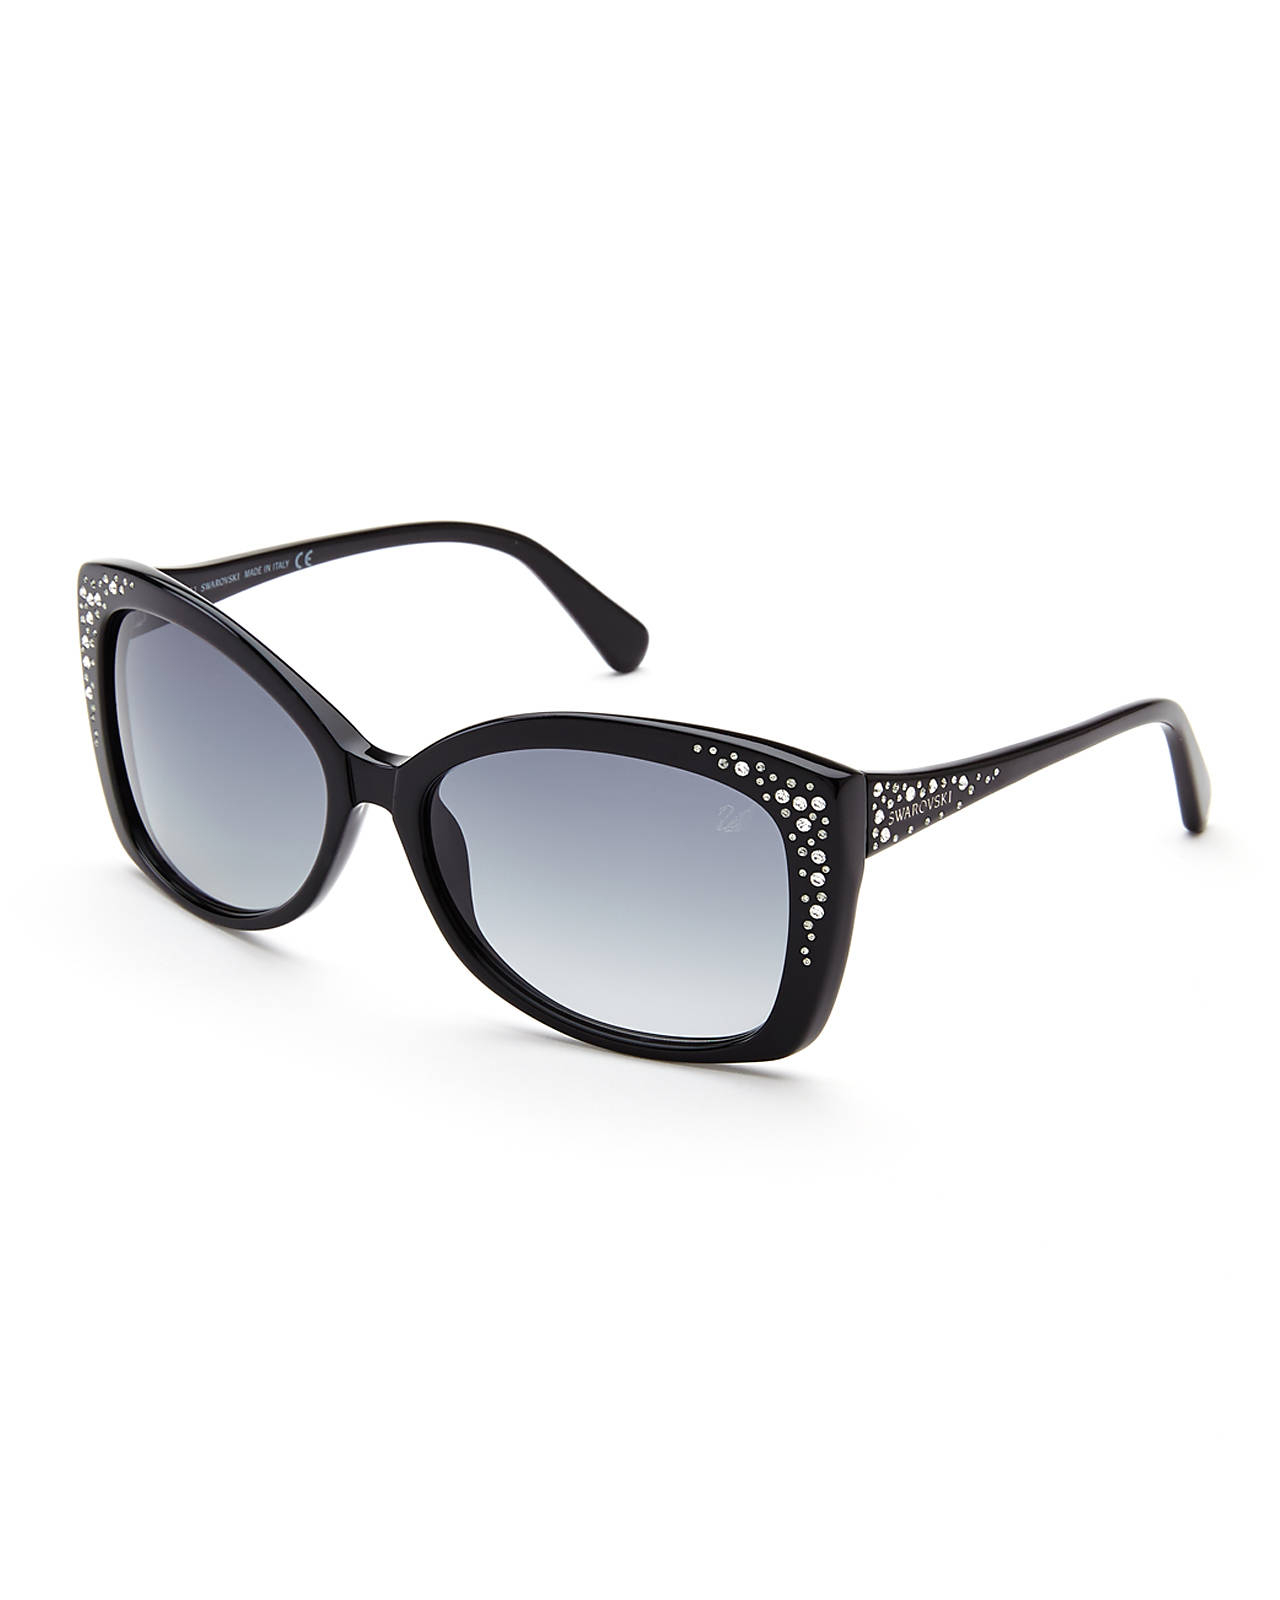 lyst swarovski sw19 black xl cat eye sunglasses in black